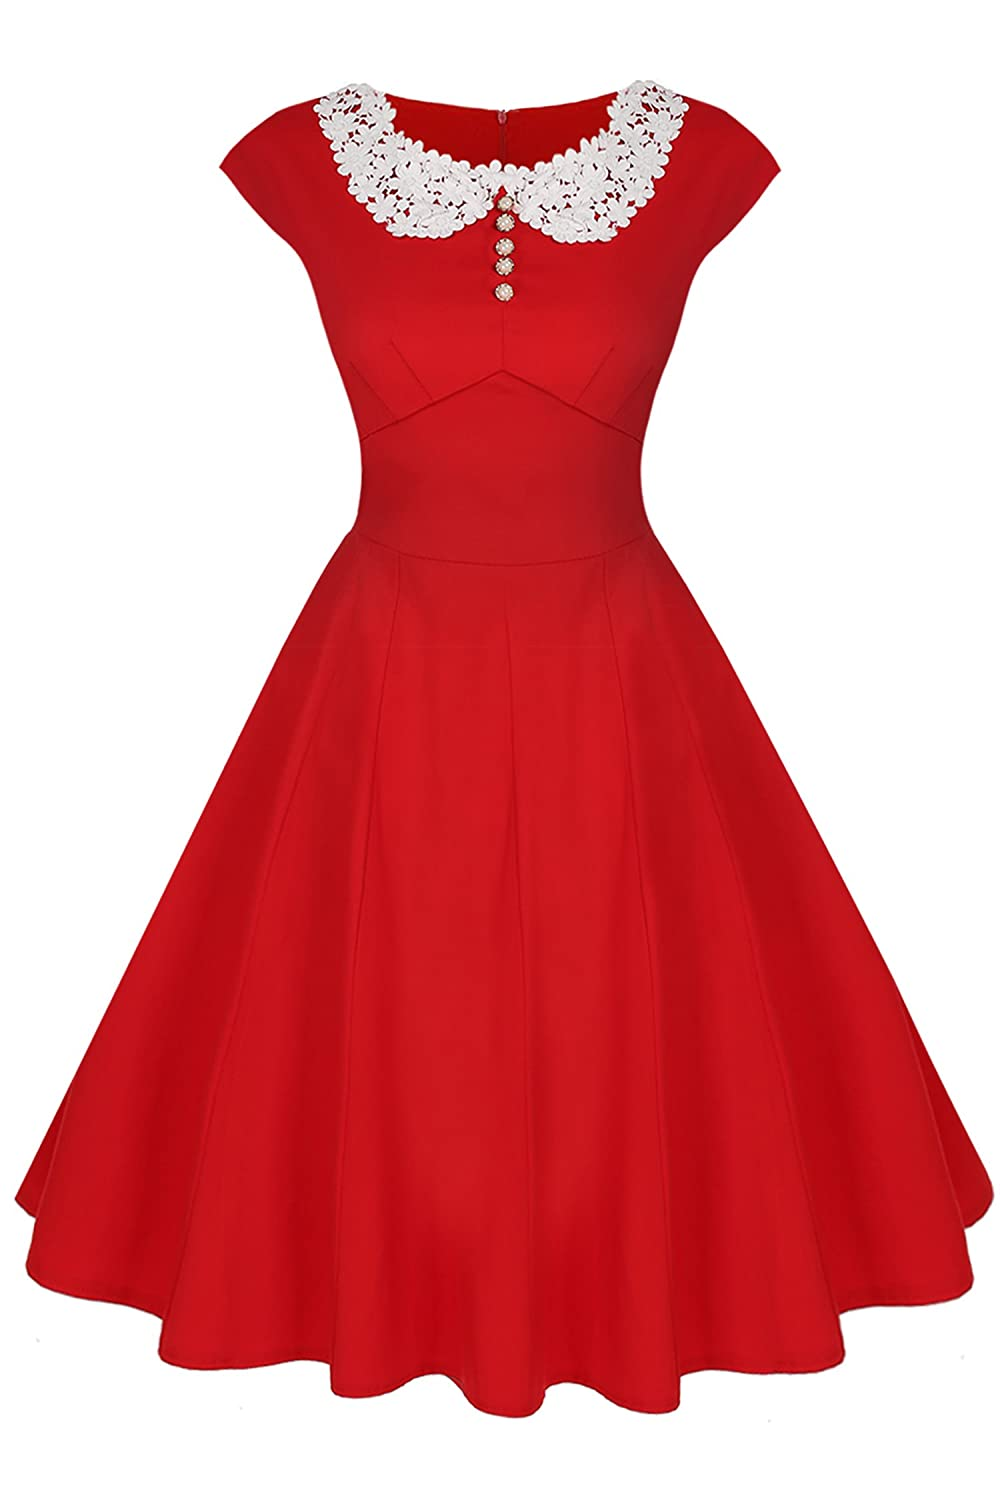 1940s Dresses | 40s Dress, Swing Dress ACEVOG Womens Classy Vintage Audrey Hepburn Style 1940s Rockabilly Evening Dress $19.99 AT vintagedancer.com